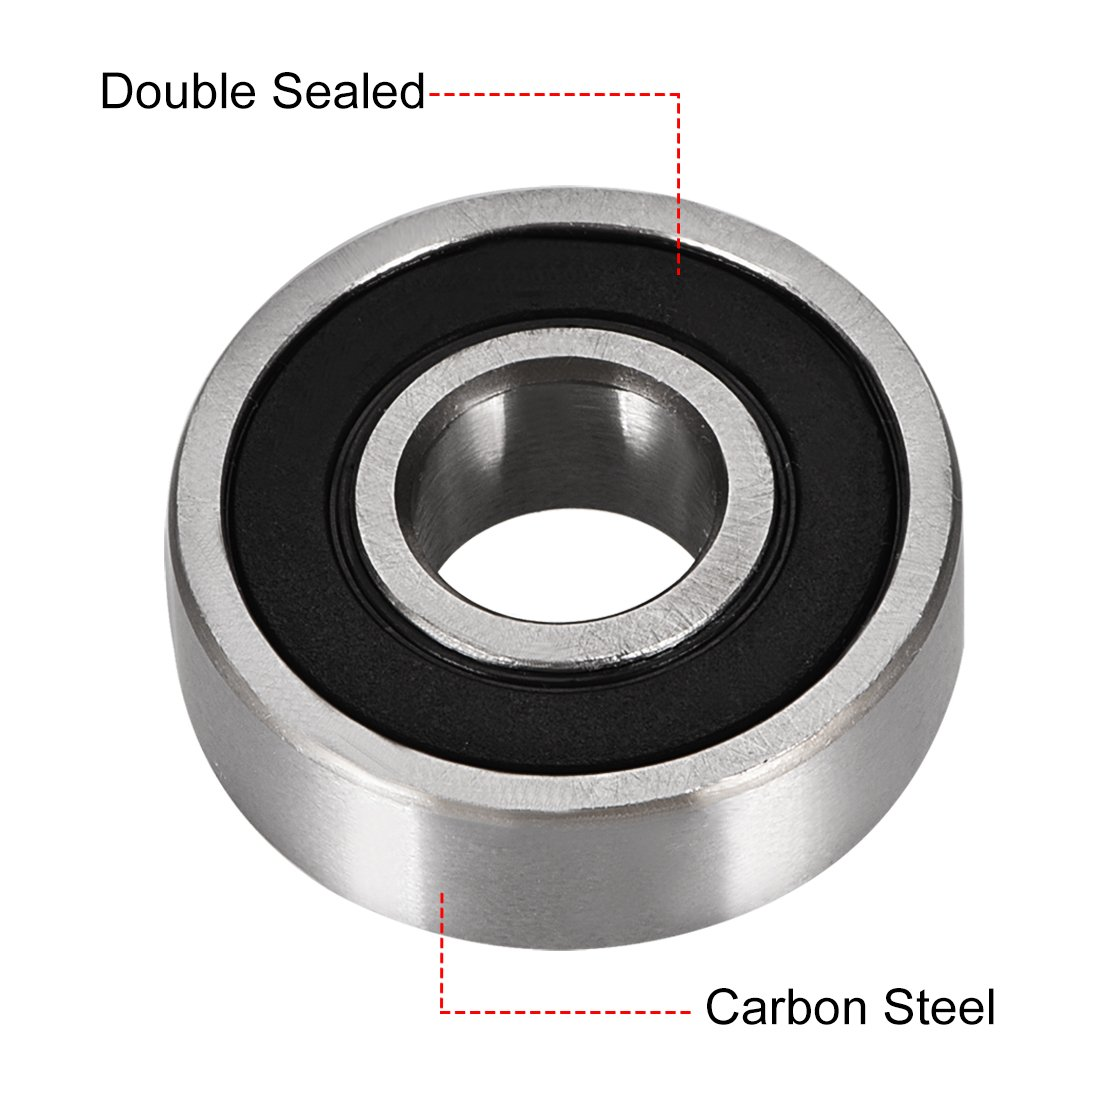 Pack of 10 Carbon Steel 6000-2RS Ball Bearing 10mm x 26mm x 8mm Double Sealed 180100 Deep Groove Bearings